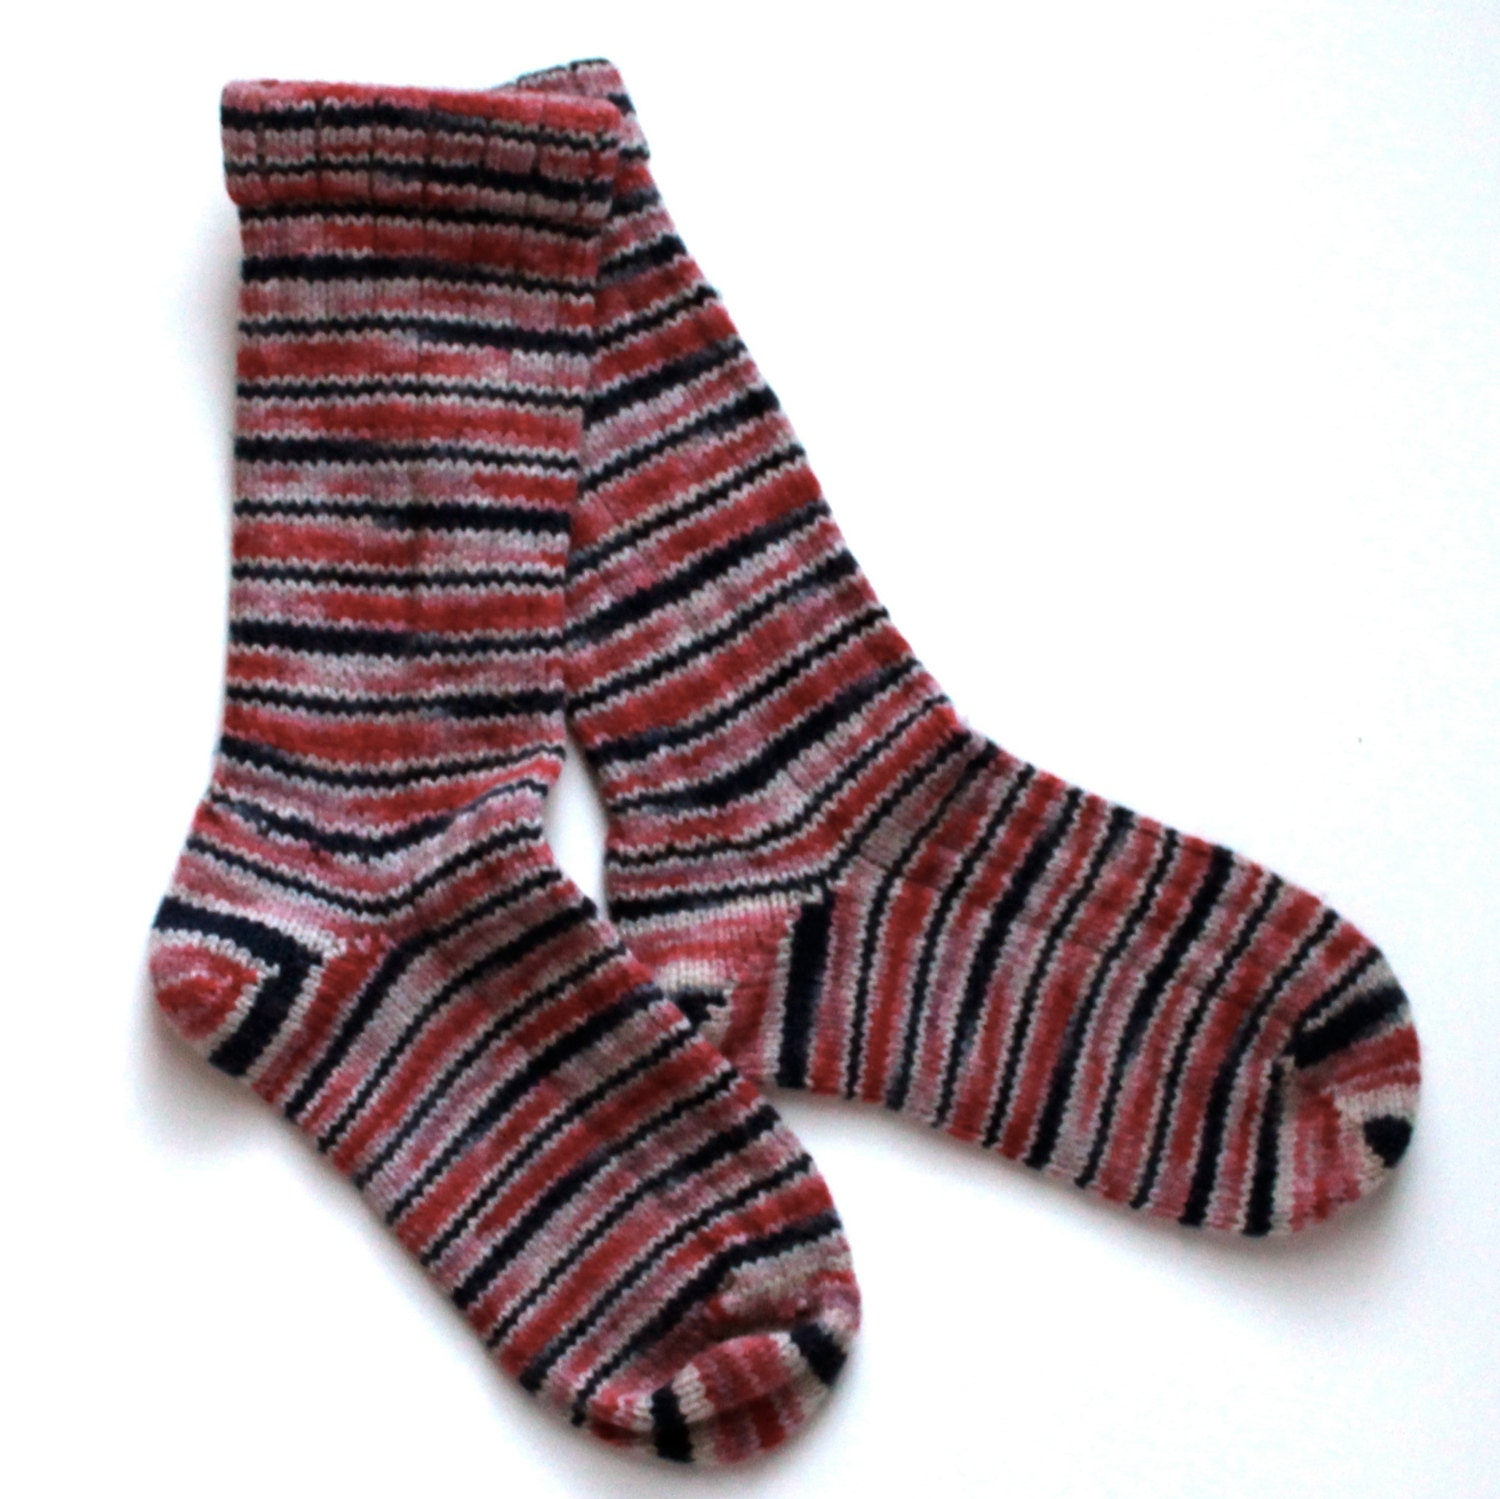 Handmade Warm Wool Socks 715 -- Size Women 4-6 - ShadySideFarm